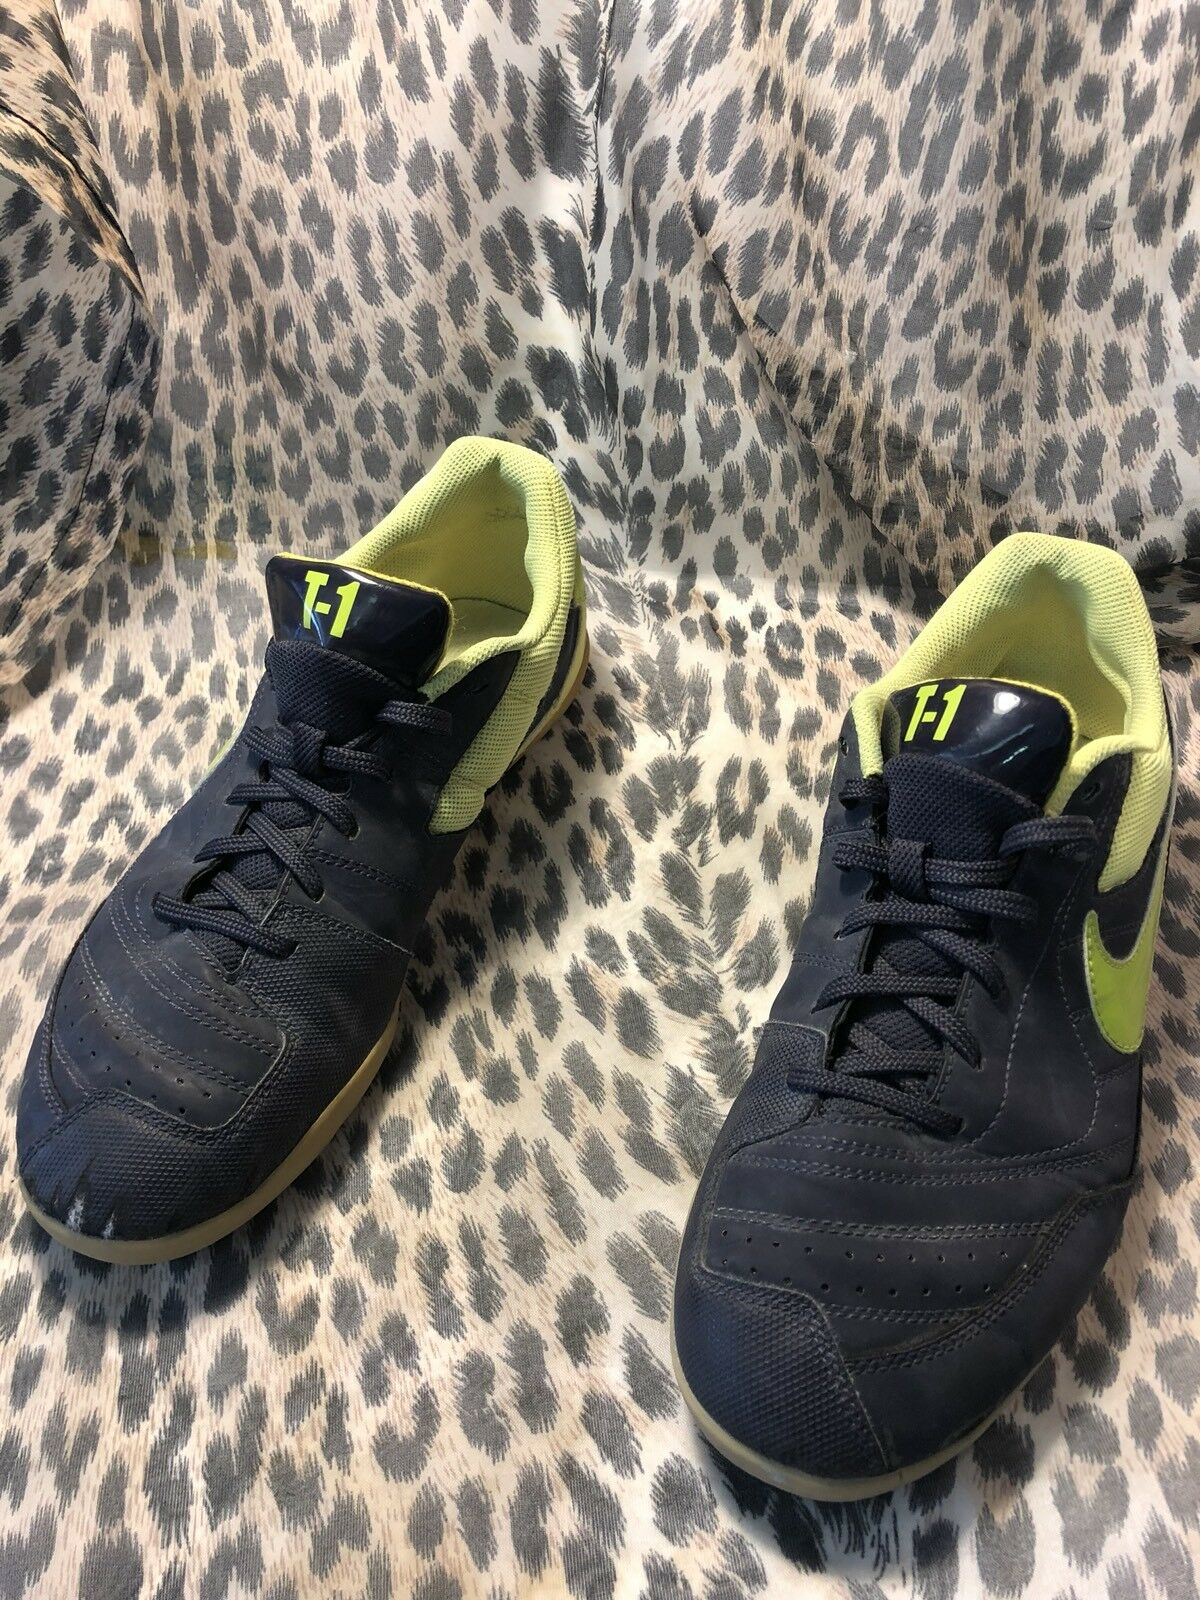 NIKE T-1 INDOOR SOCCER SHOES MENS 8.5 BLACK YELLOW 344919 New shoes for men and women, limited time discount